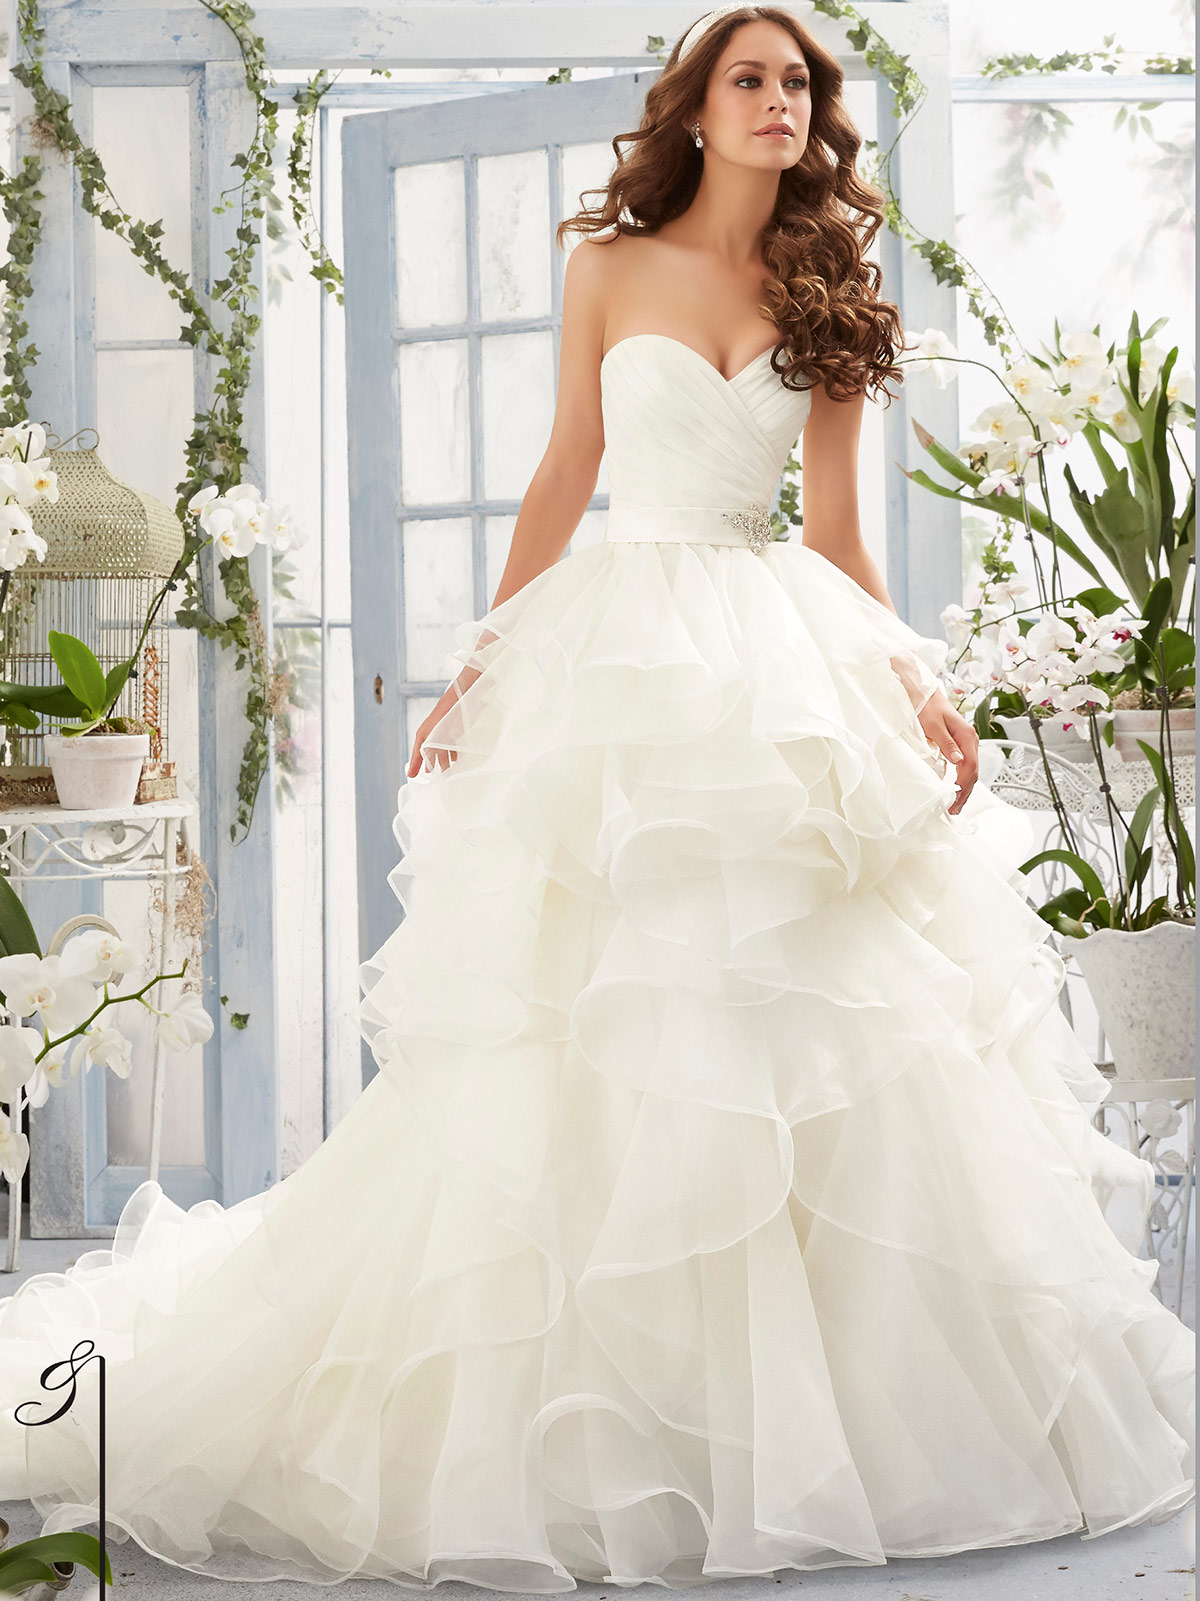 Tiered Wedding Dresses Mori Lee – Dresses for Woman